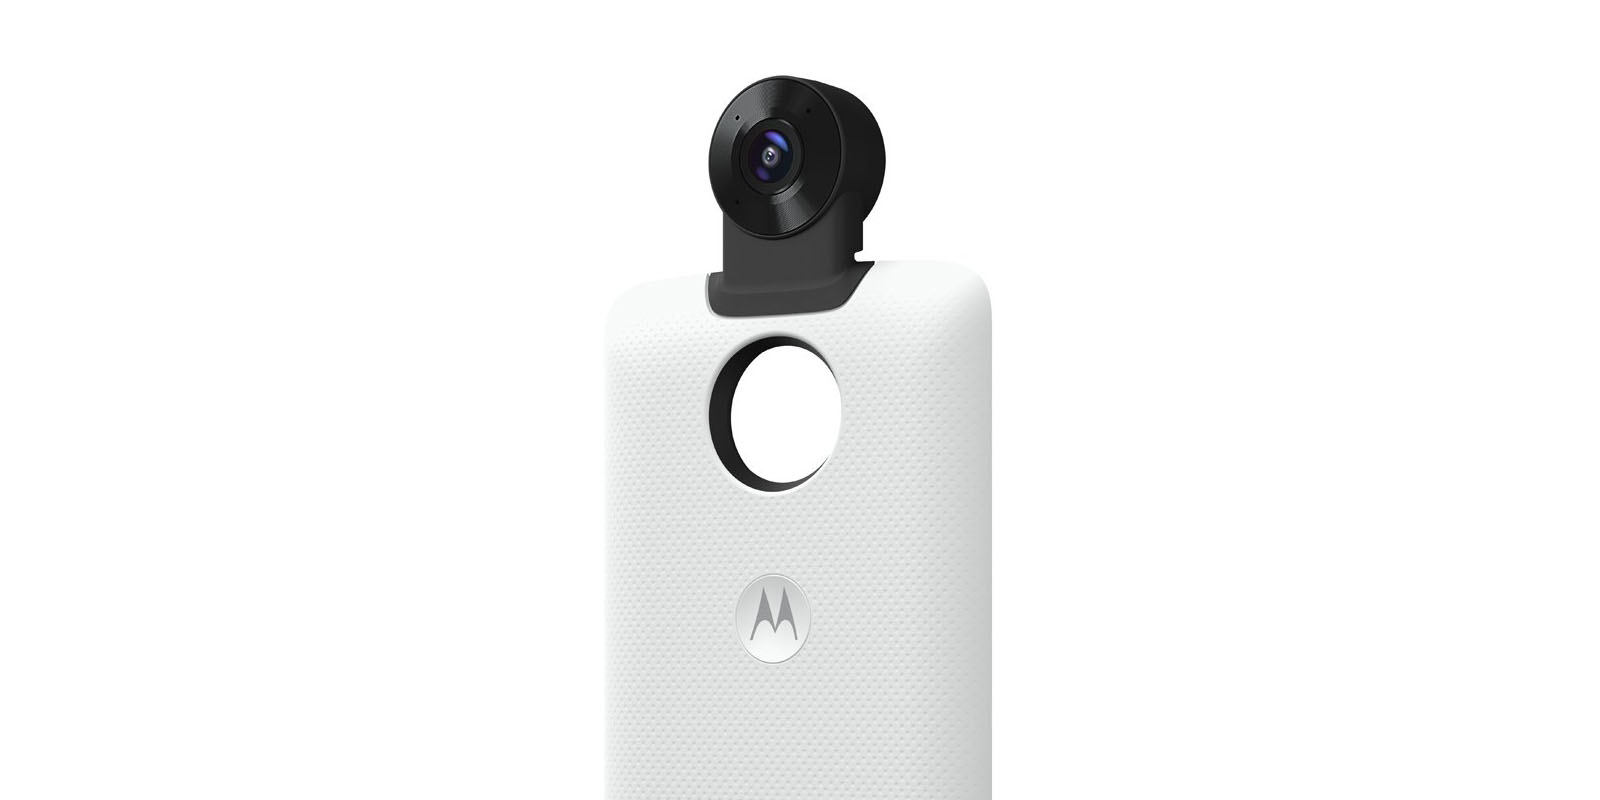 Motorola's next wave of Moto Mods includes 360-degree camera, DSLR mod, Marshall speaker and mic